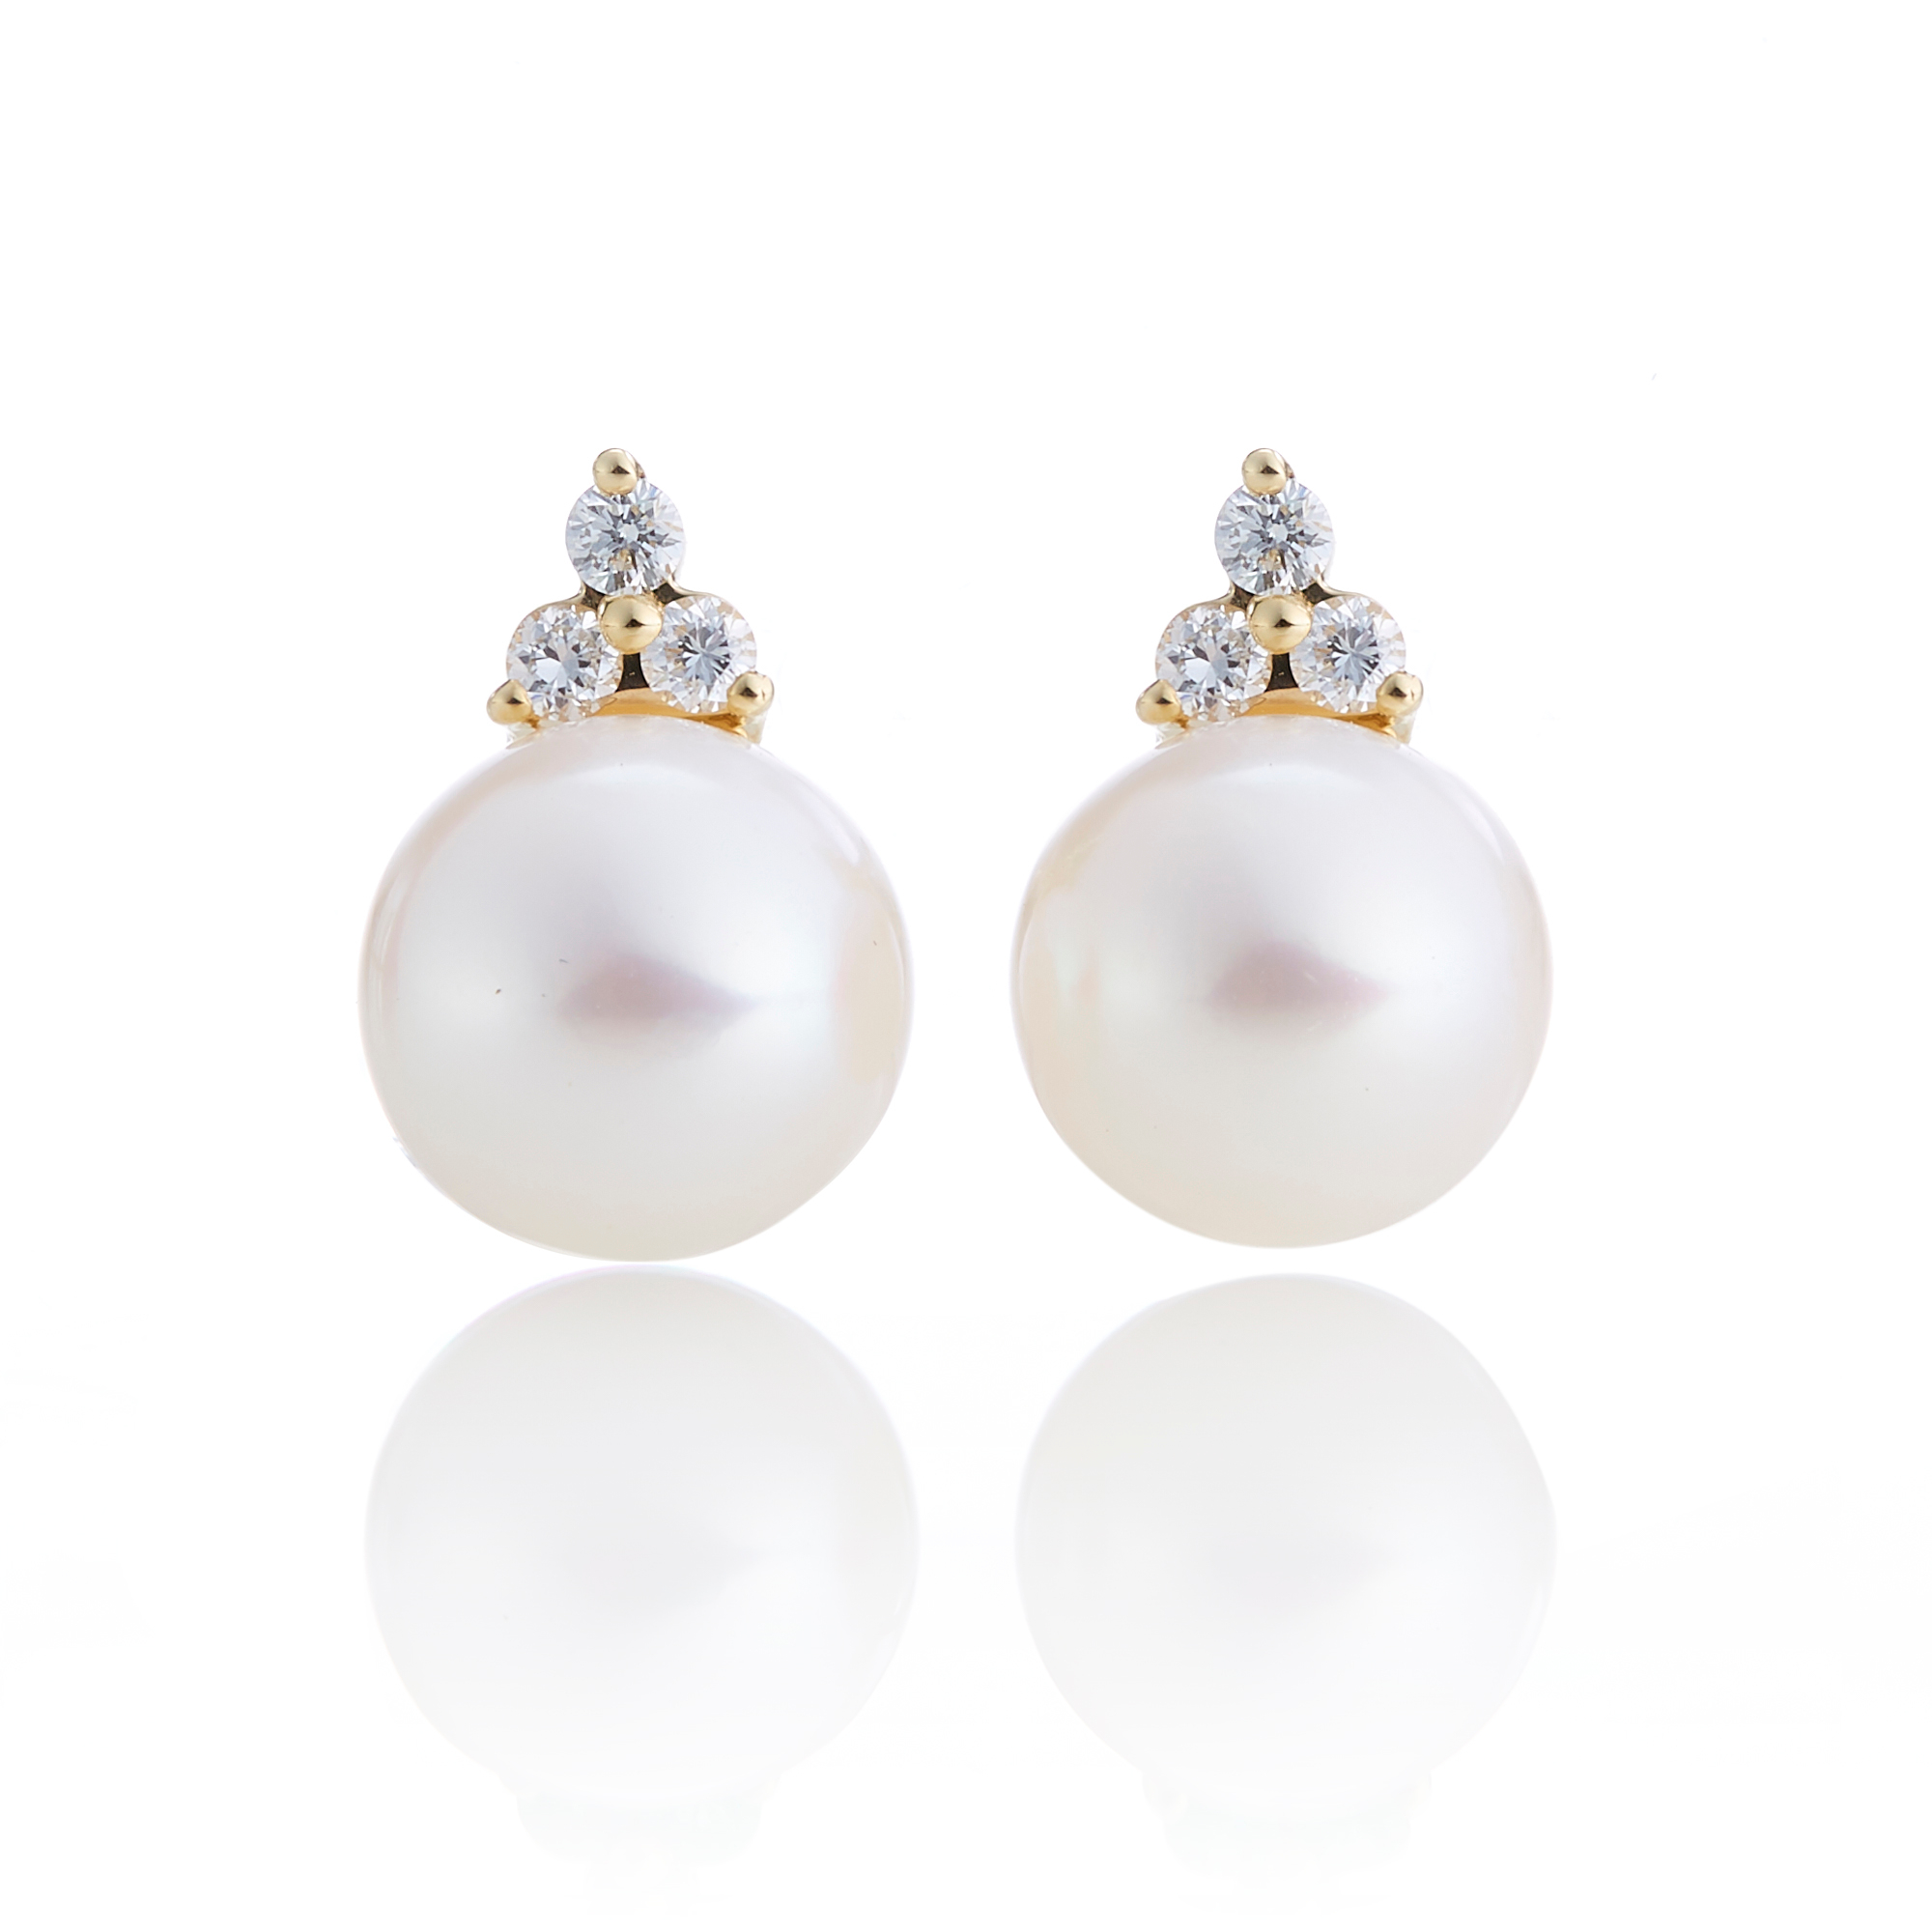 Gump's Pearl & Diamond Trio Stud Earrings